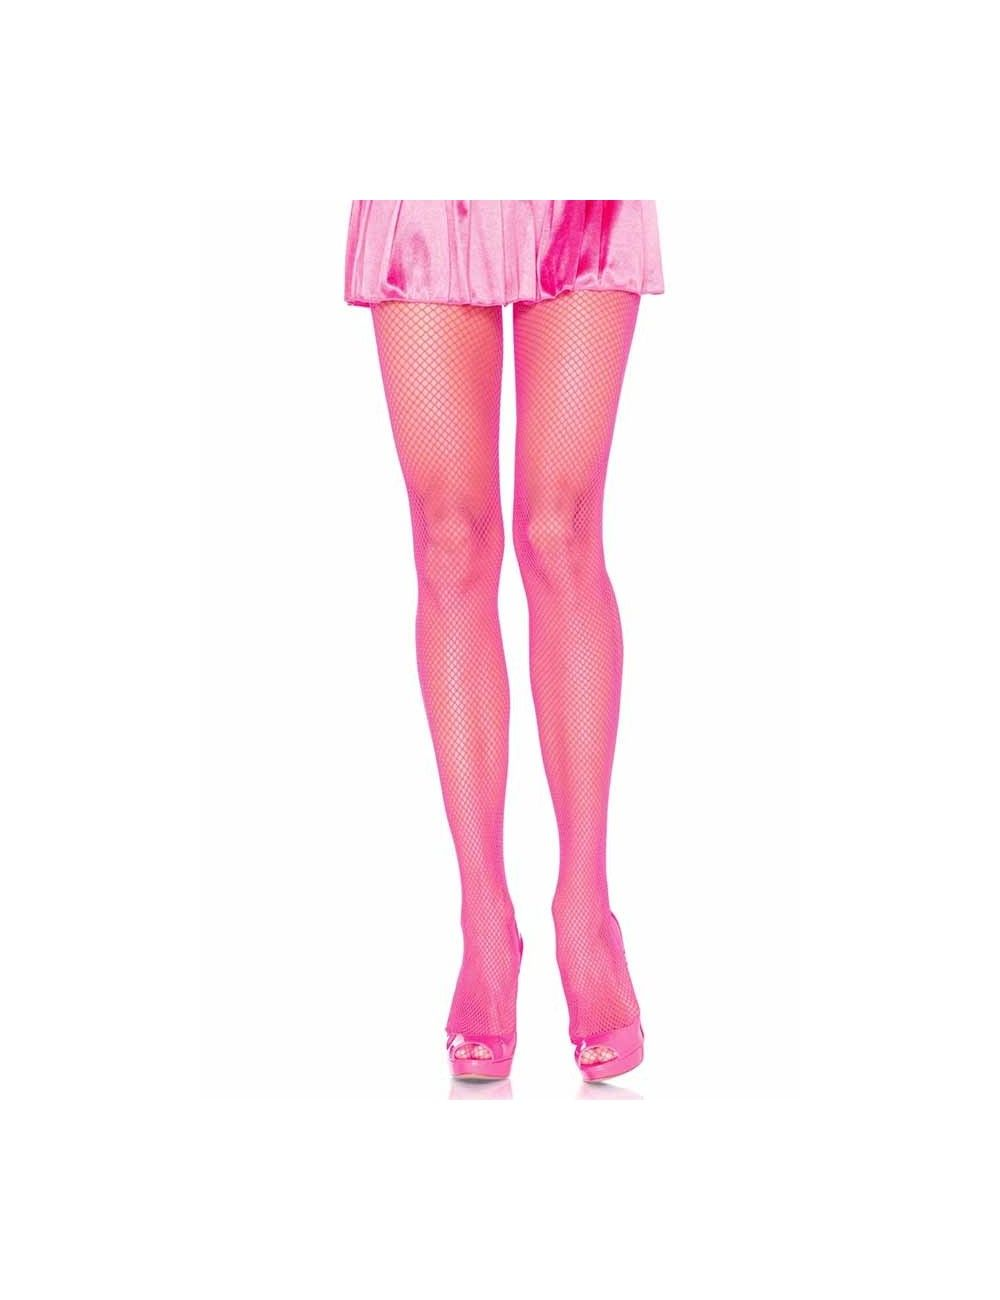 Collant rose et résille en nylon LEG AVENUE